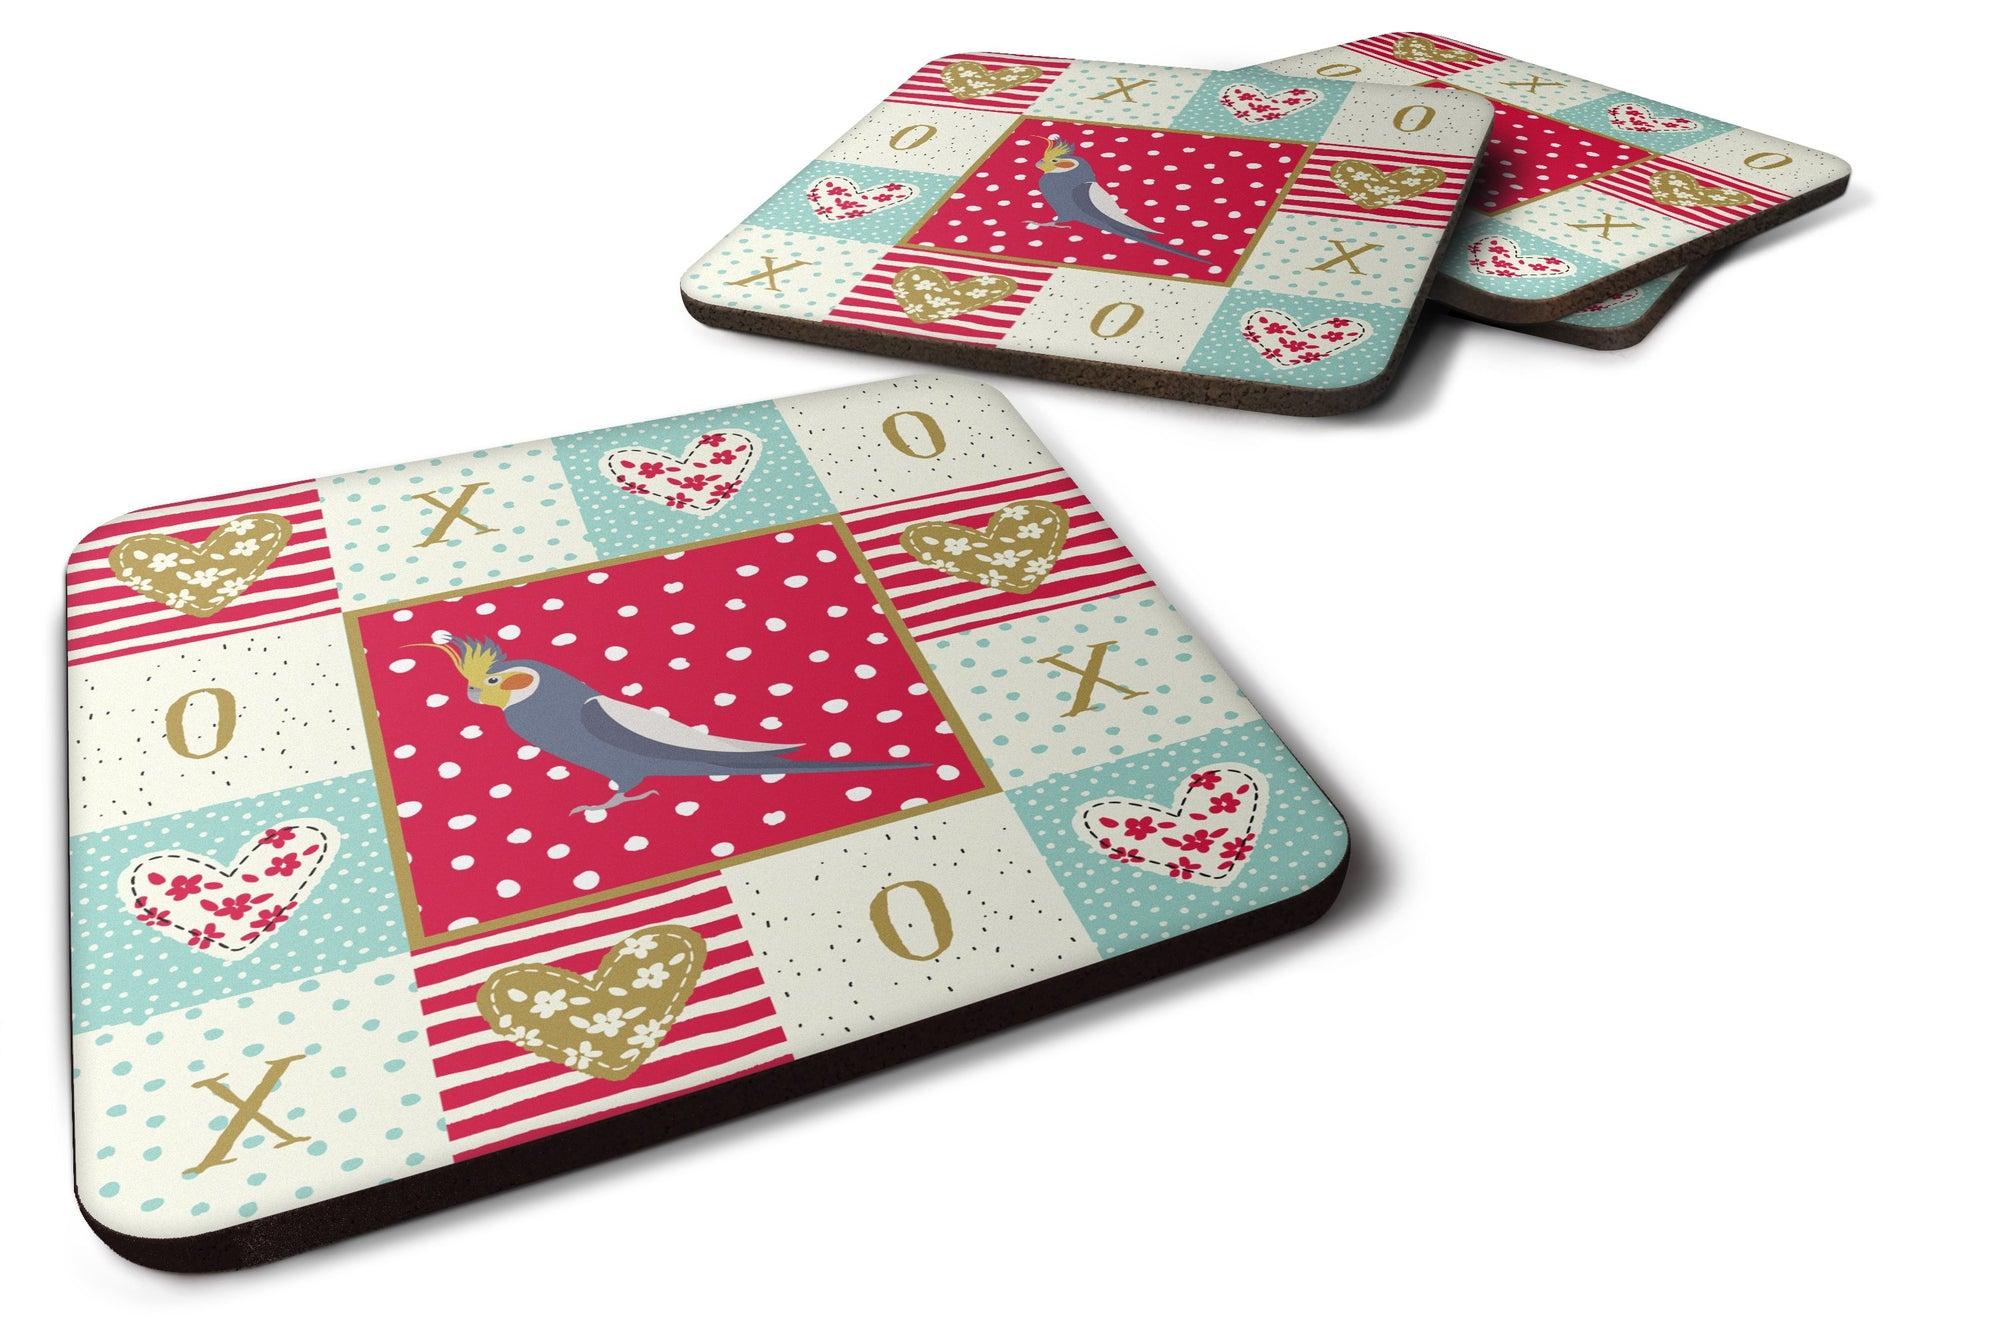 Set of 4 Cockatiel Love Foam Coasters Set of 4 CK5521FC by Caroline's Treasures